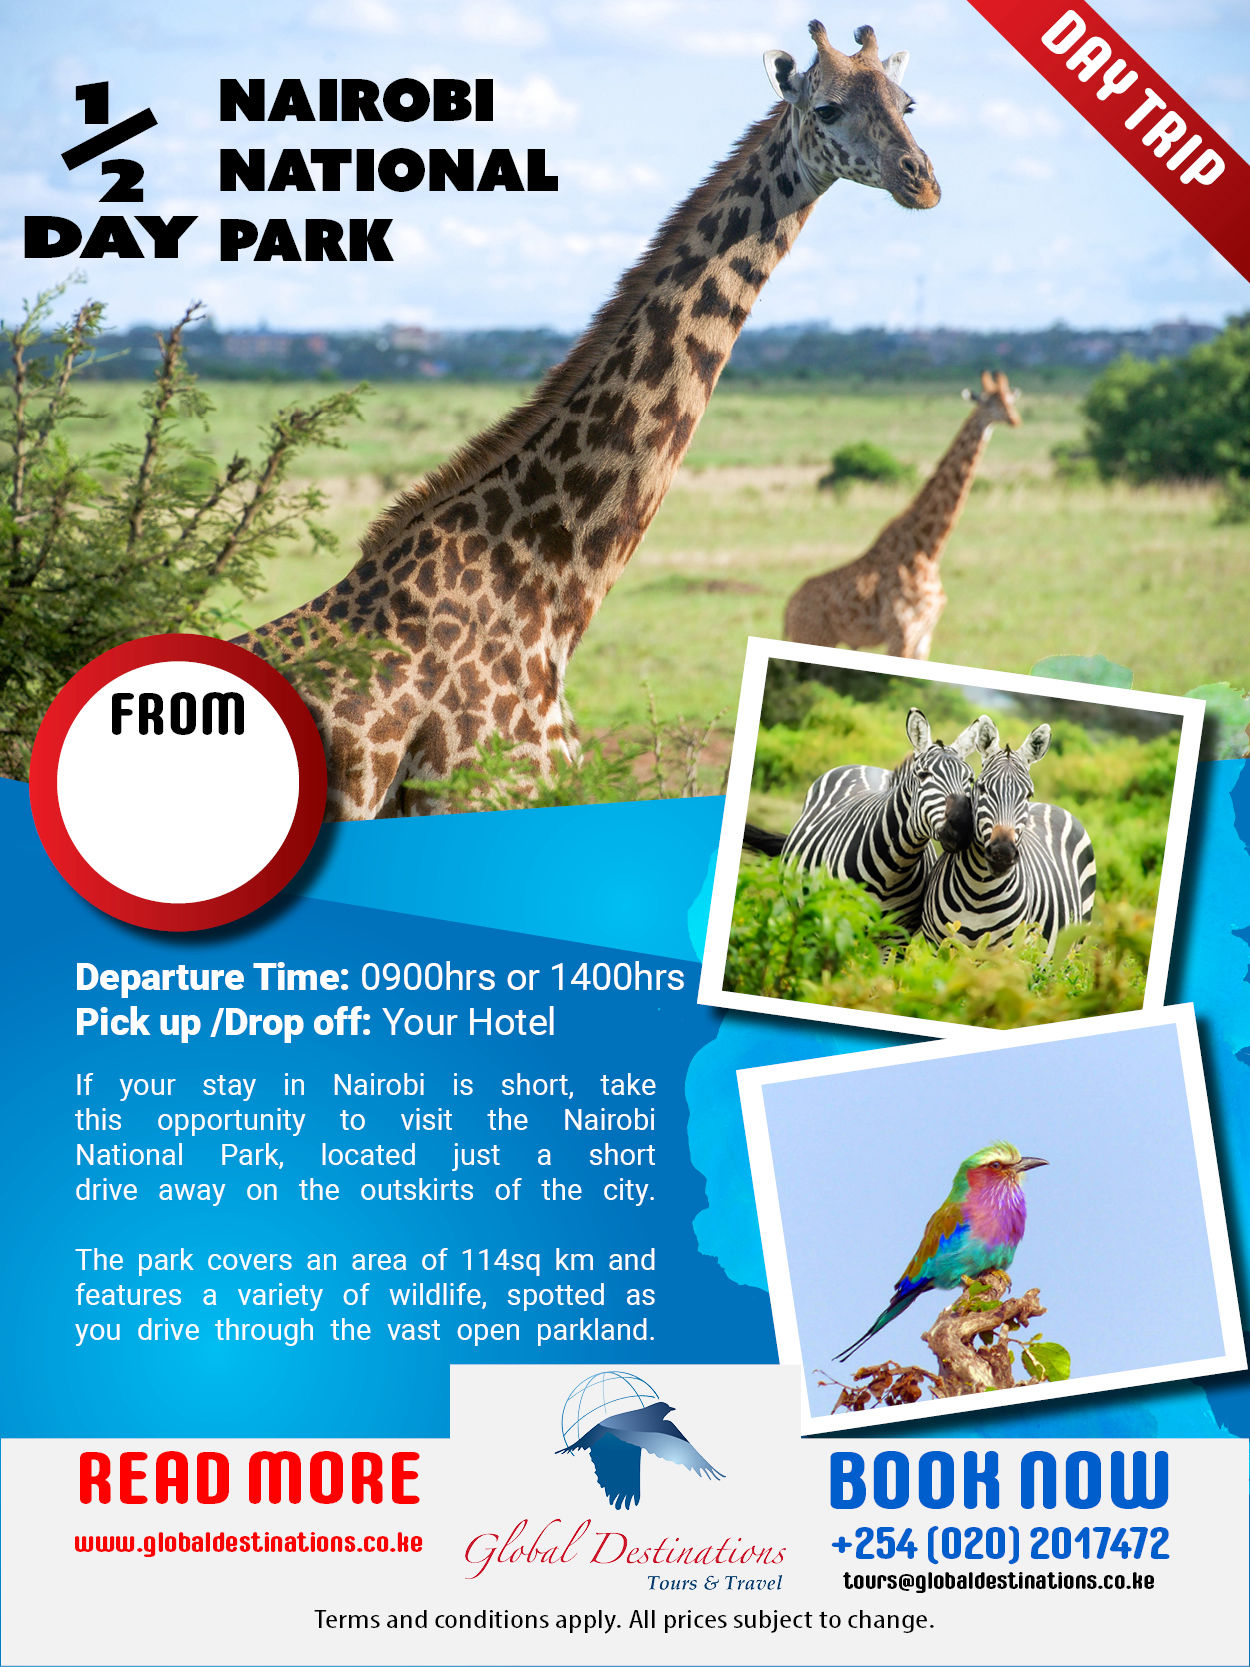 Half Day Nairobi National Park Package